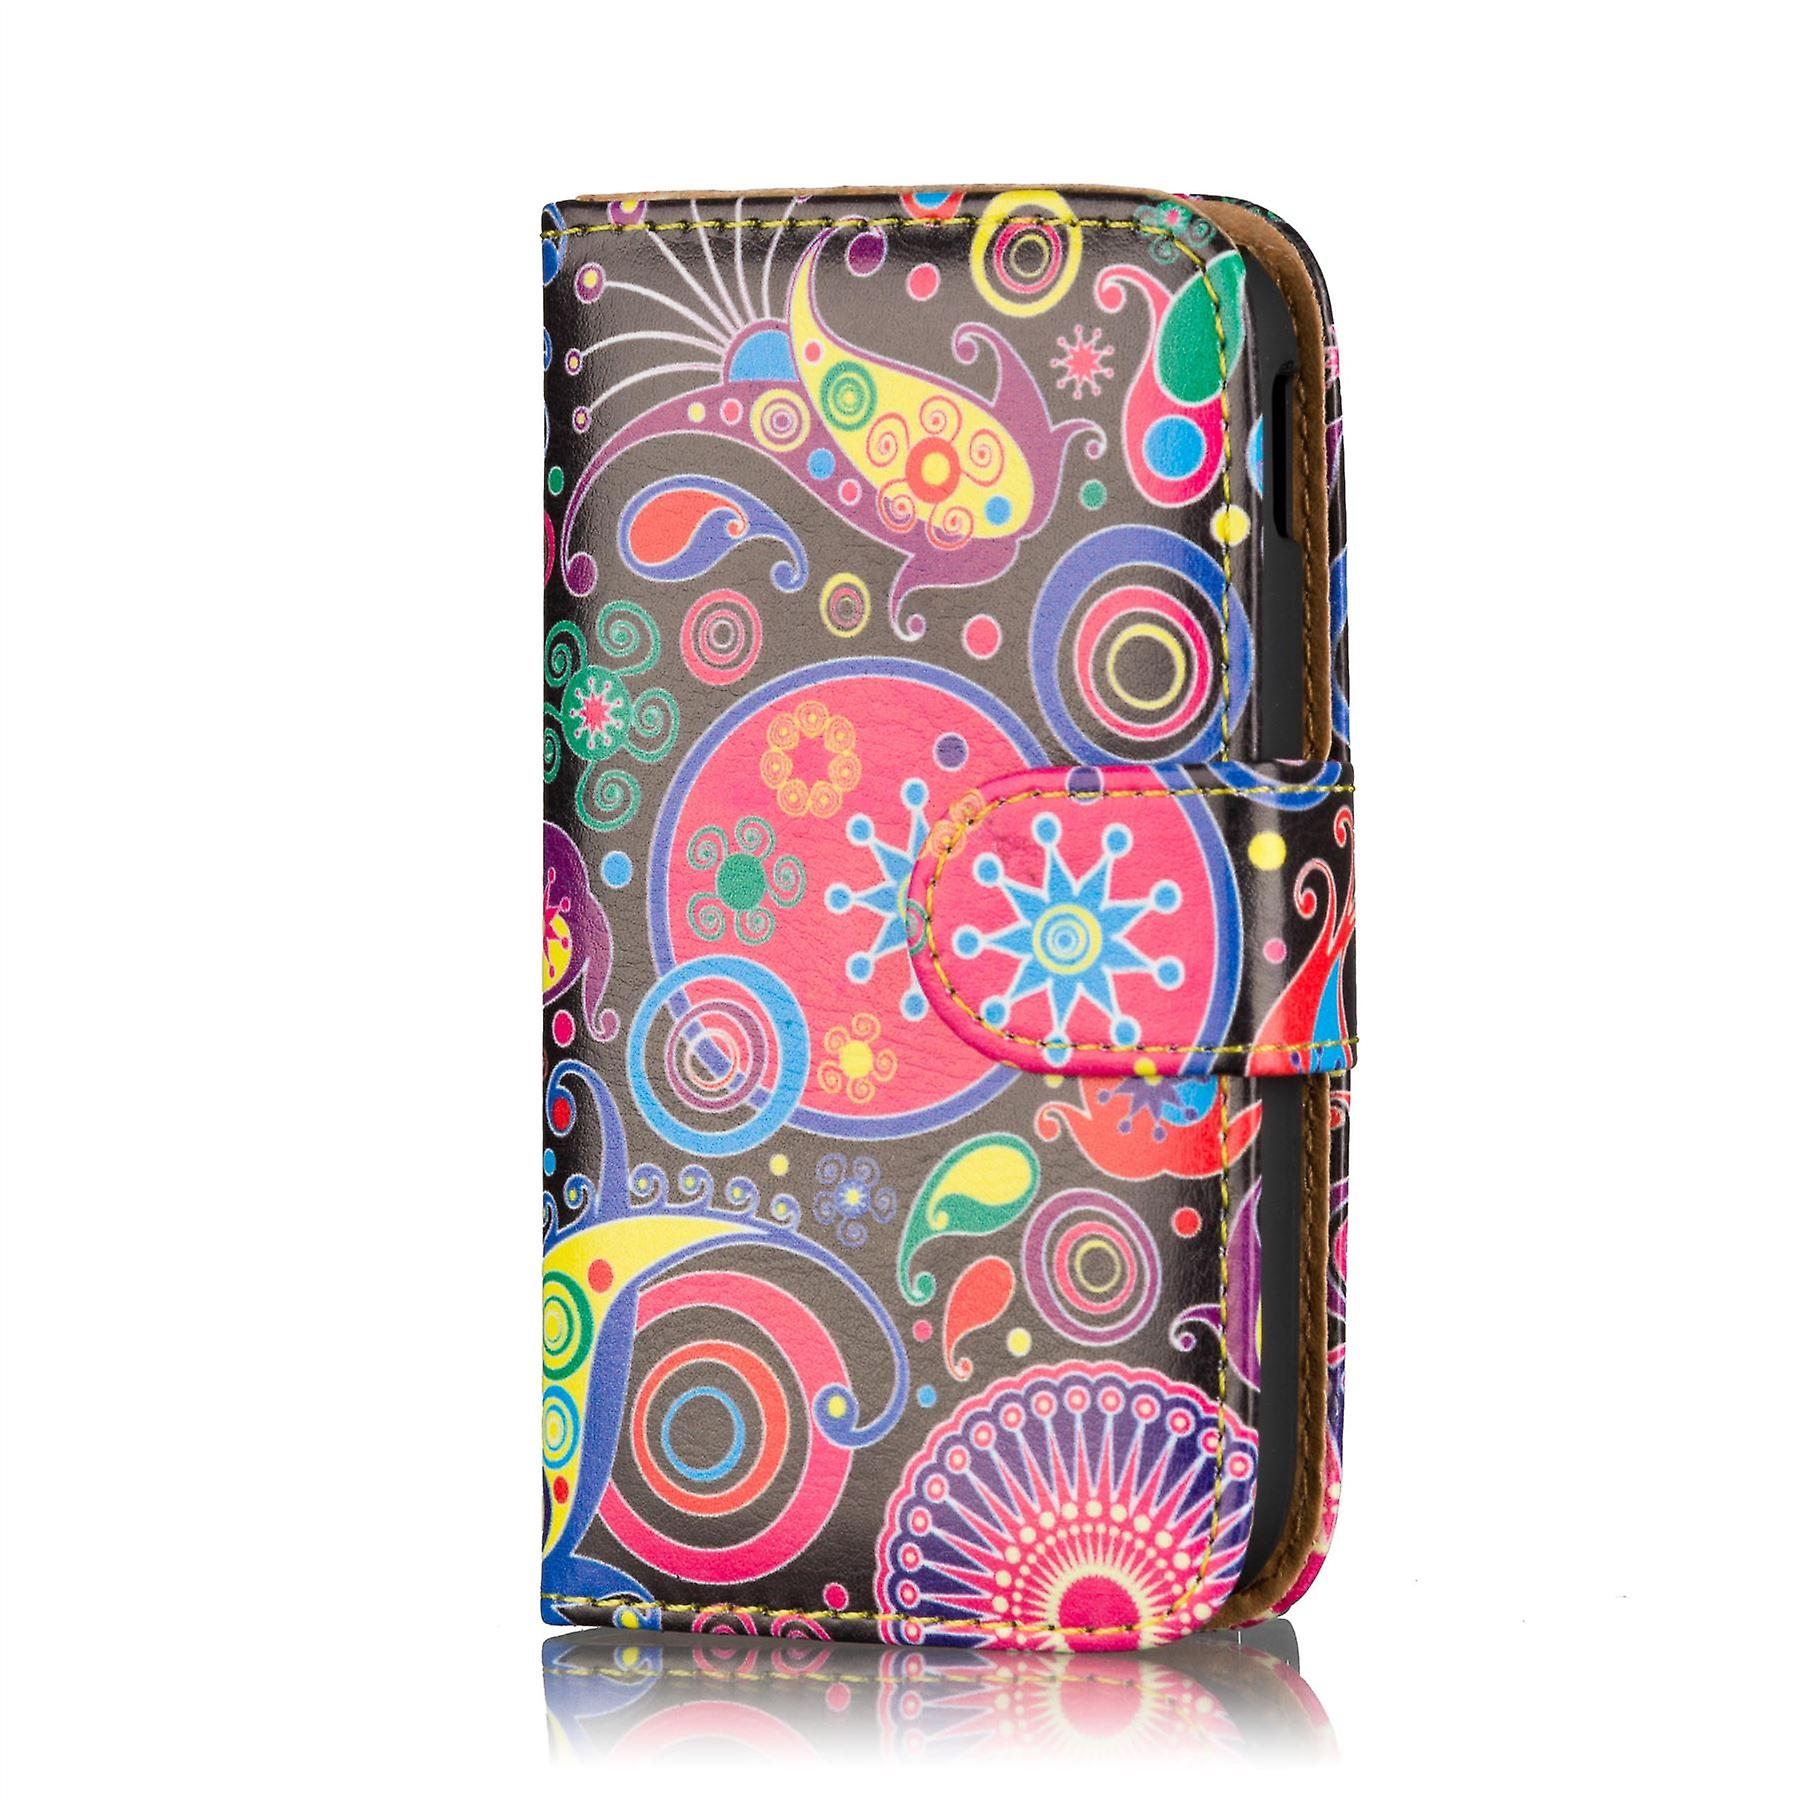 Design book leather case cover for Motorola Moto G 2013 edition - Jellyfish